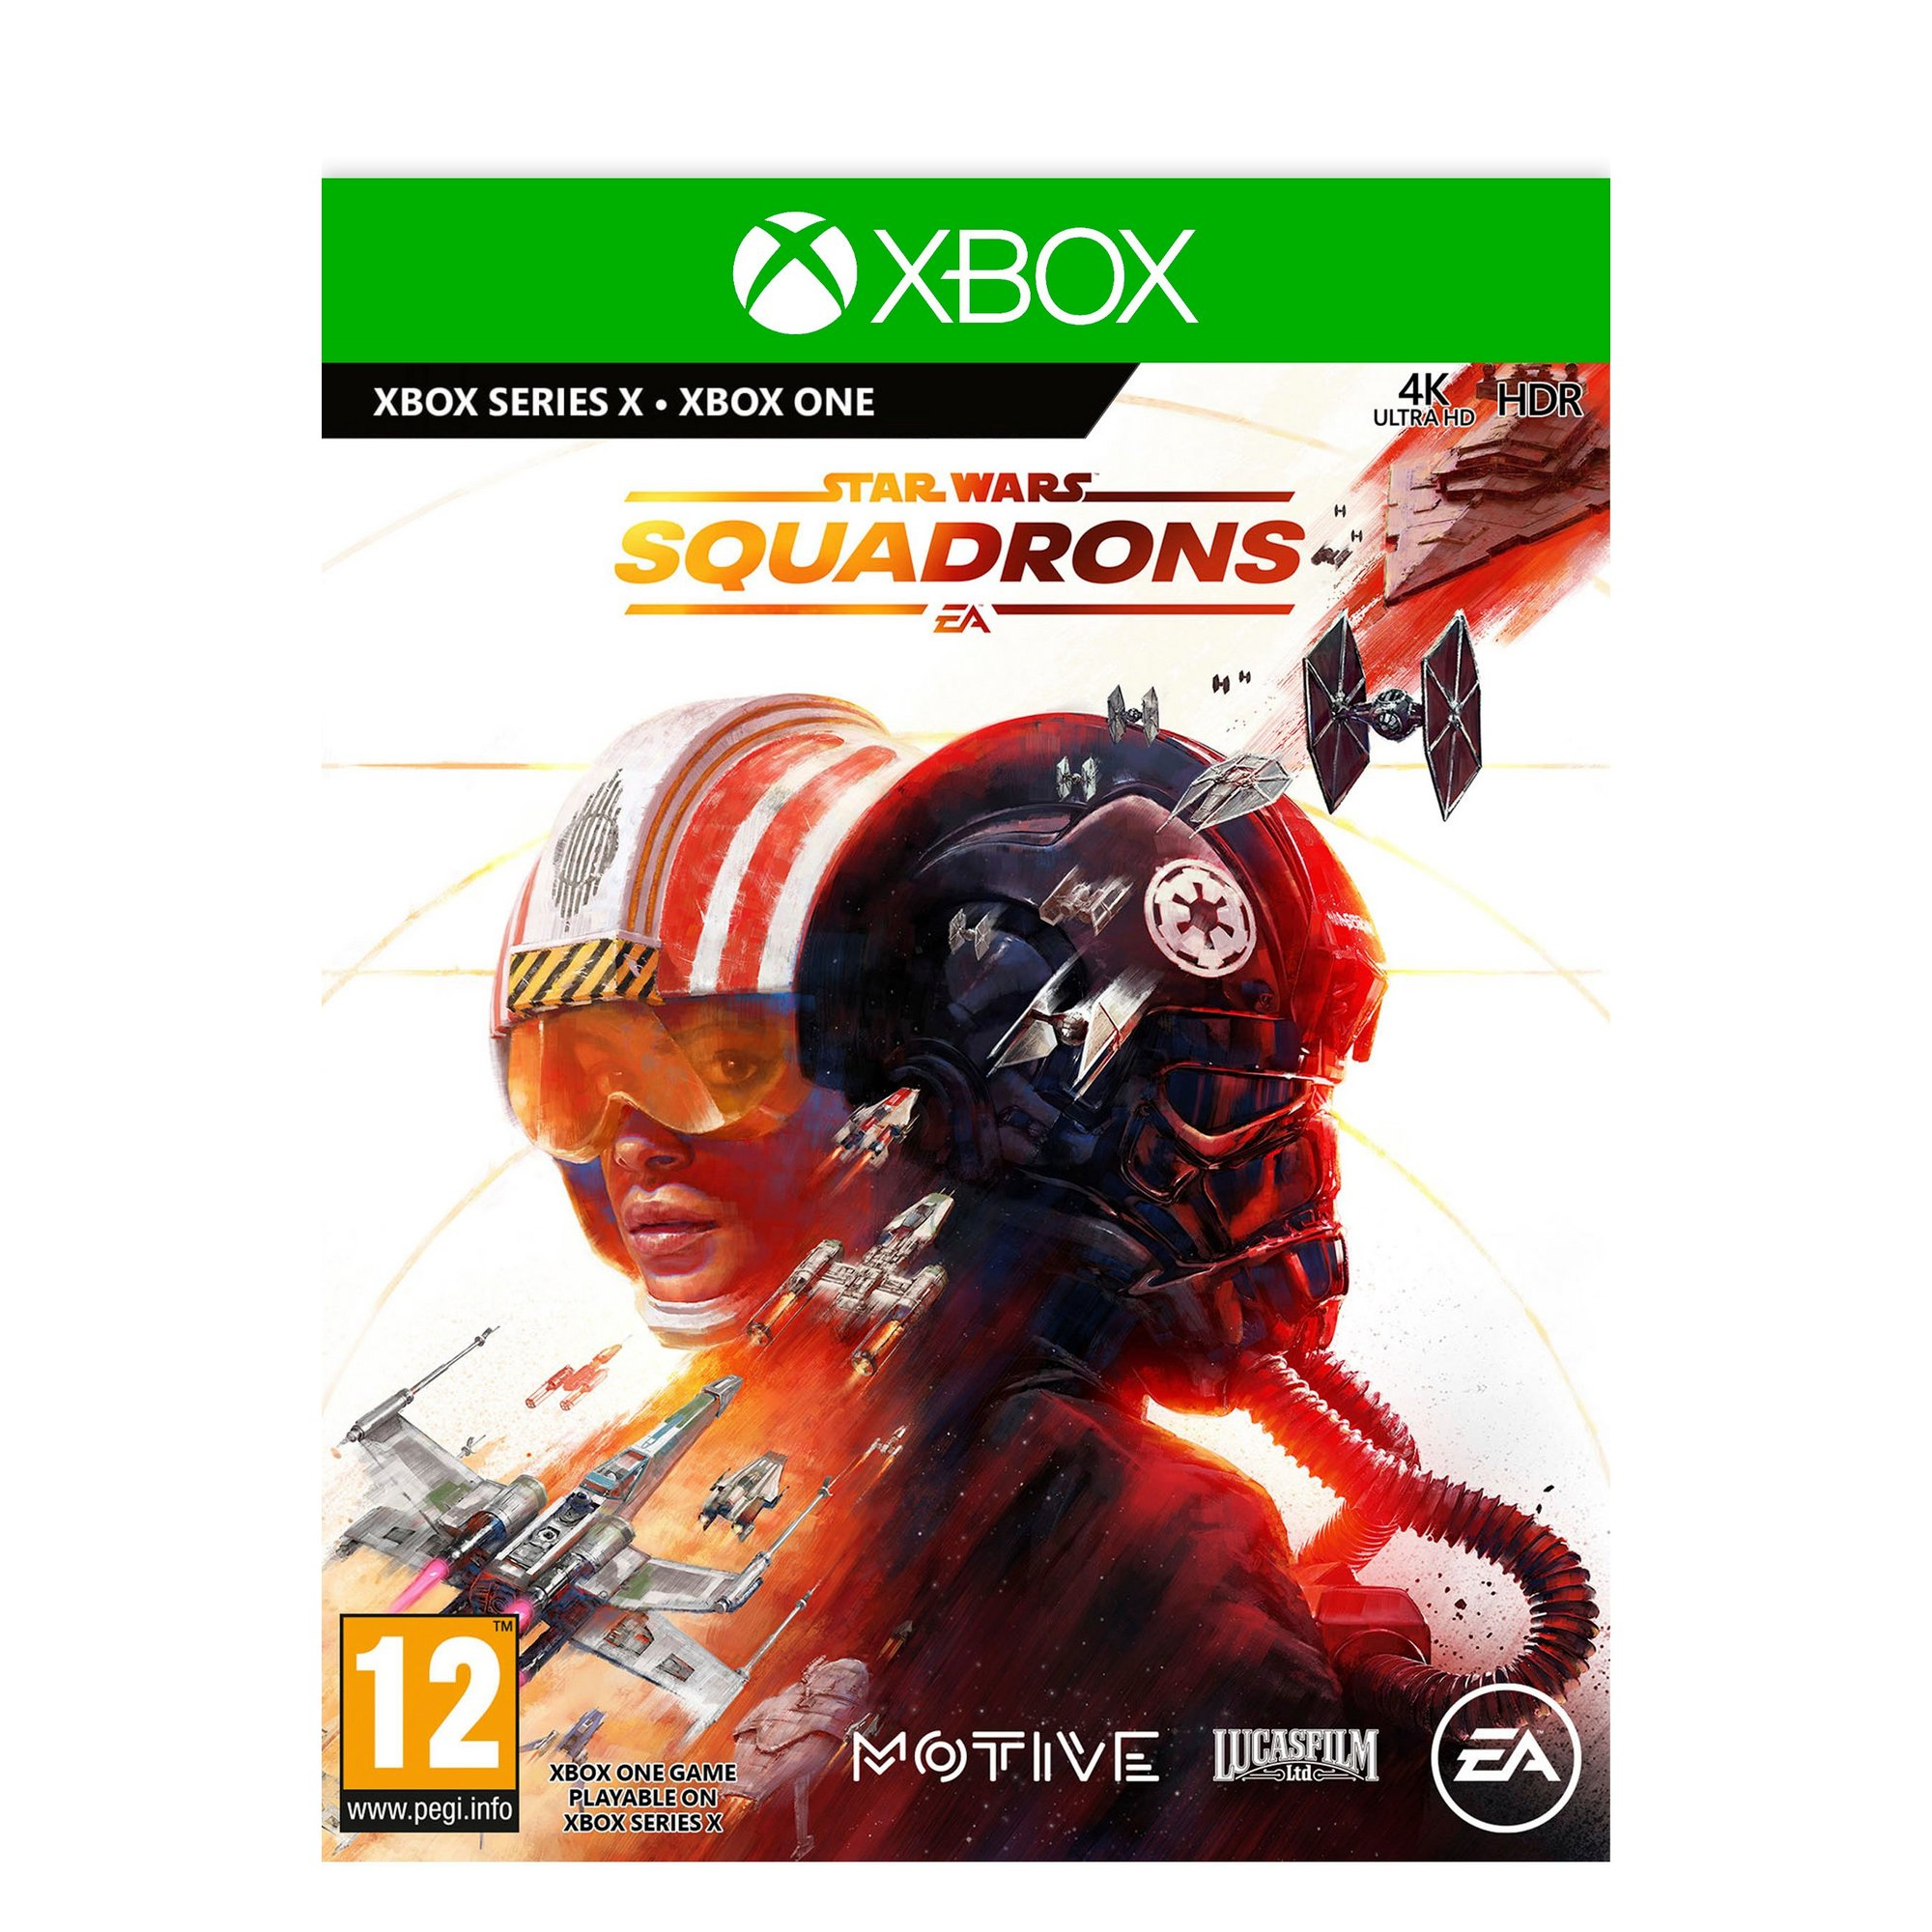 Image of Xbox One: Star Wars: Squadrons